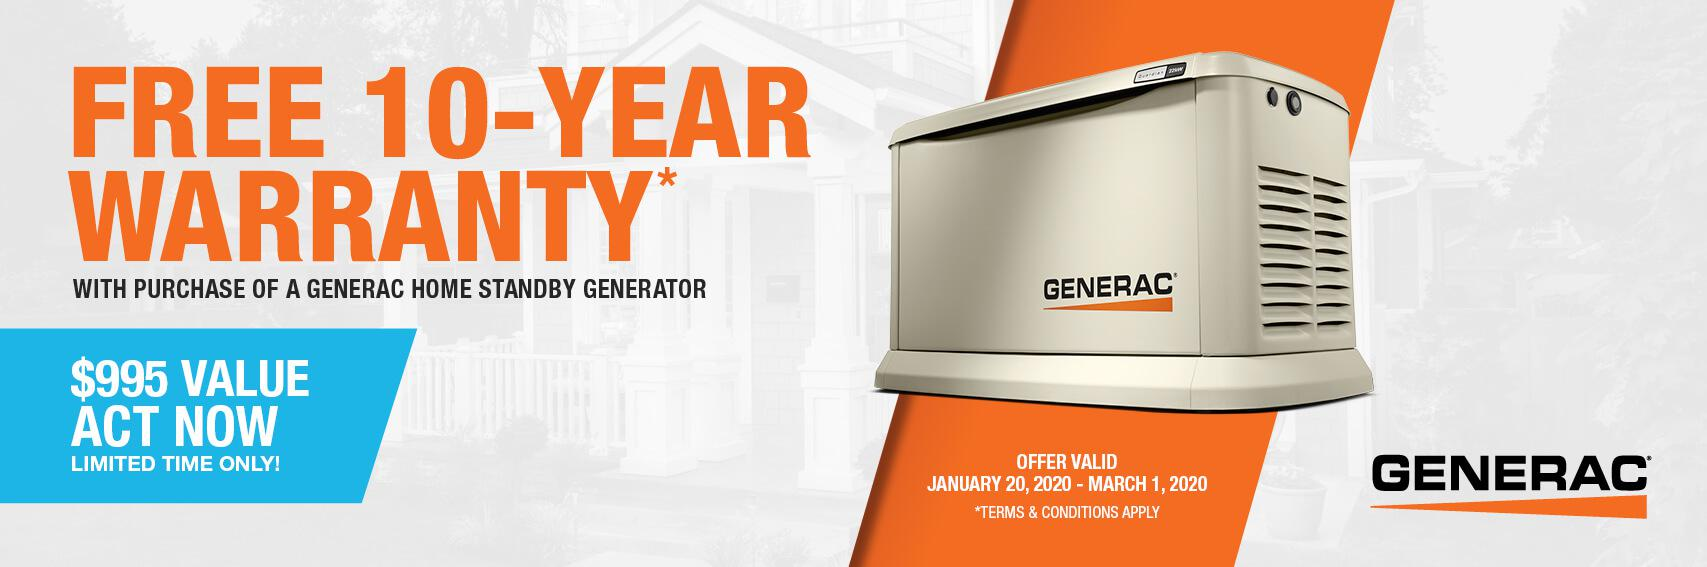 Homestandby Generator Deal | Warranty Offer | Generac Dealer | Manchester, MI